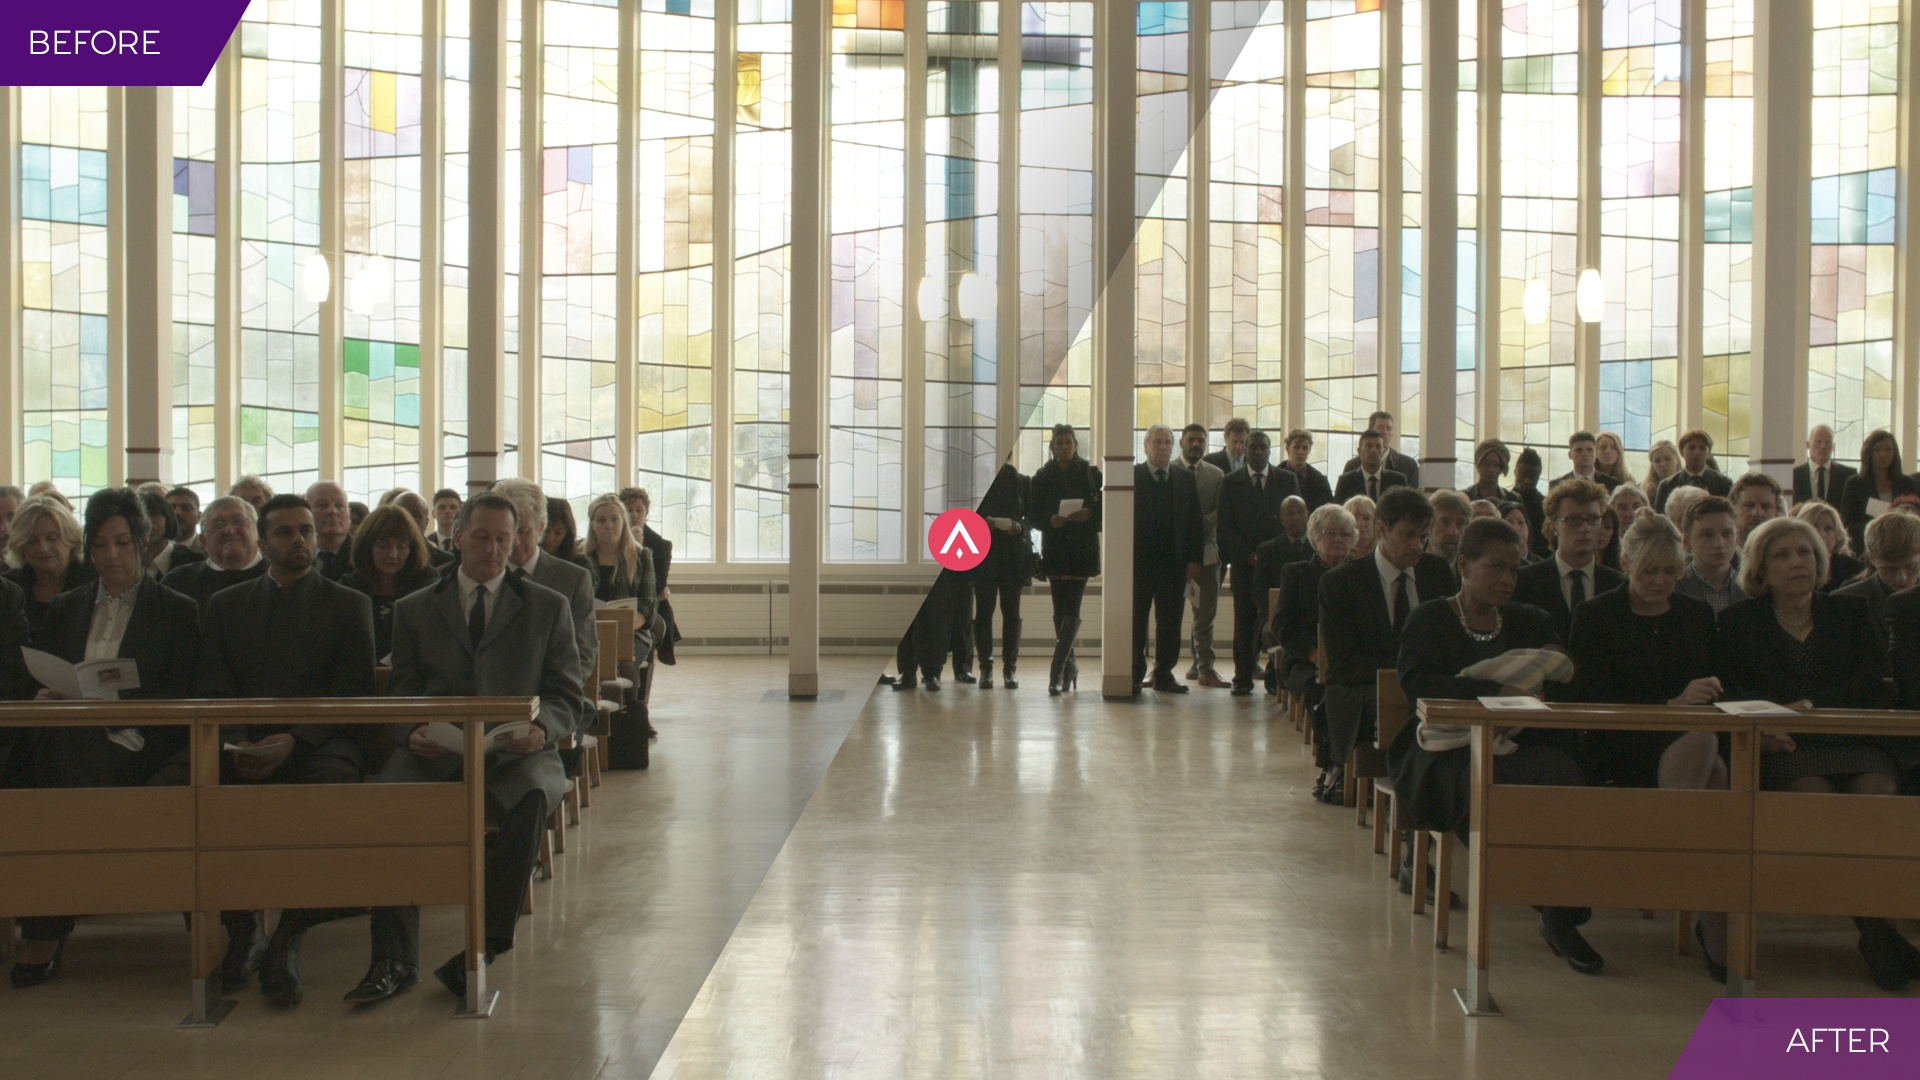 'Before and After' image of crowd replication effects applied to a church service scene